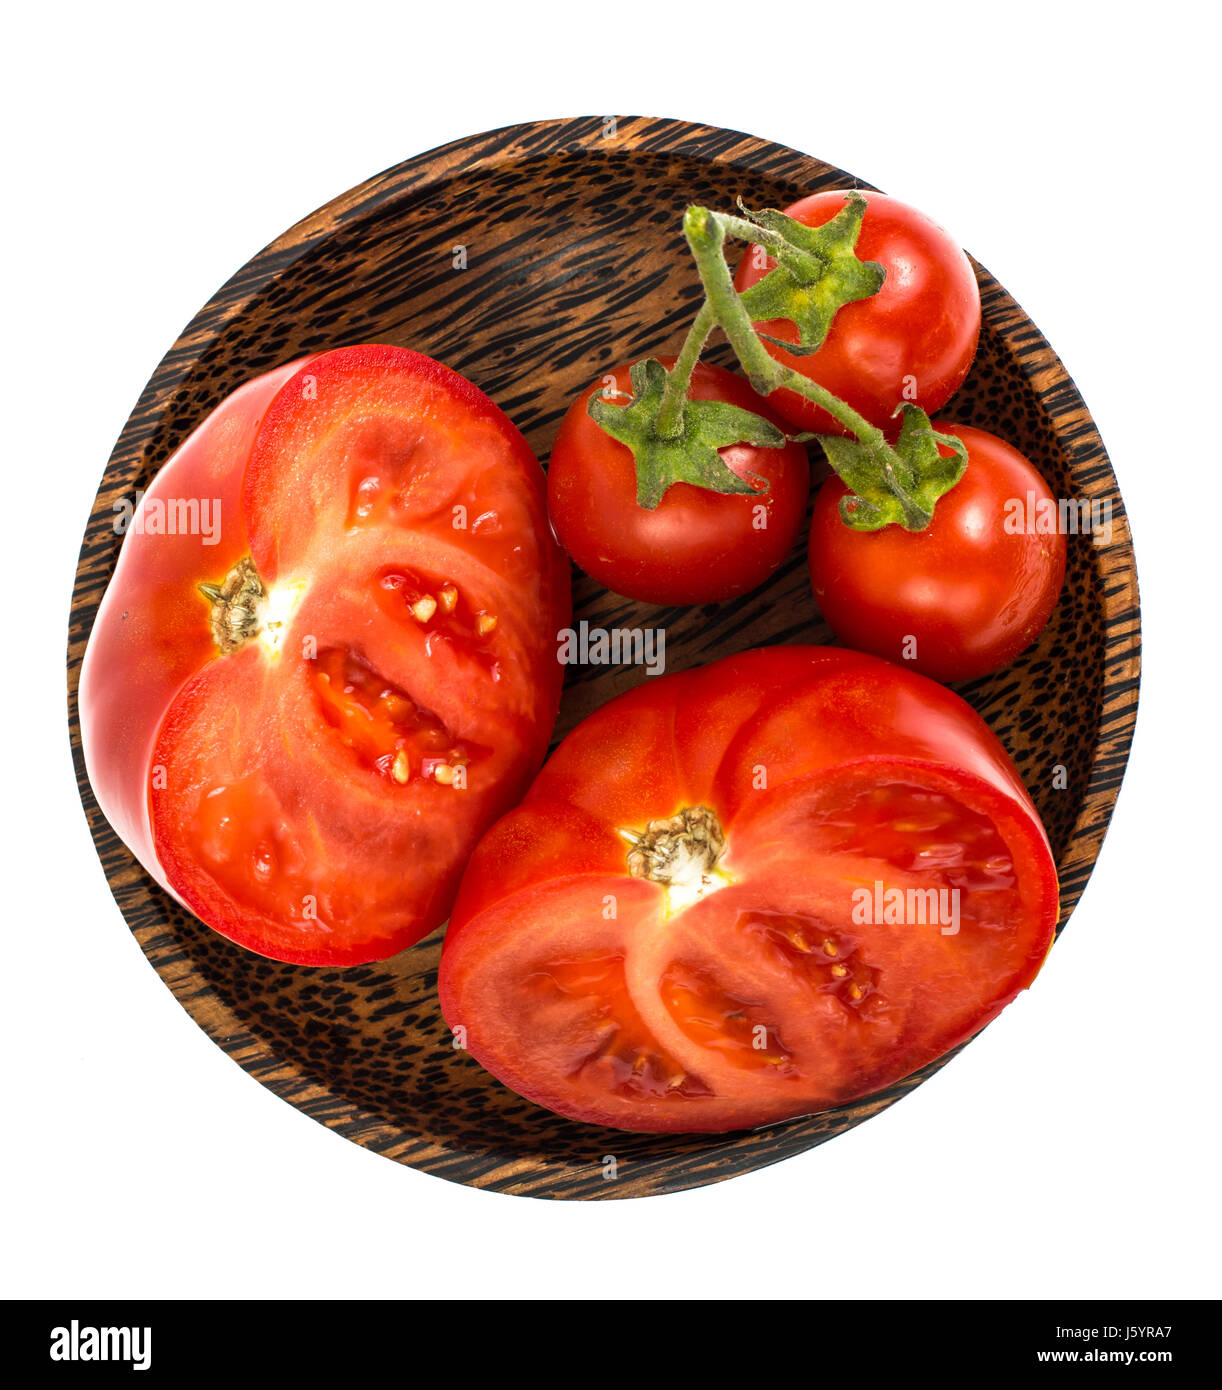 how to store a half cut tomato